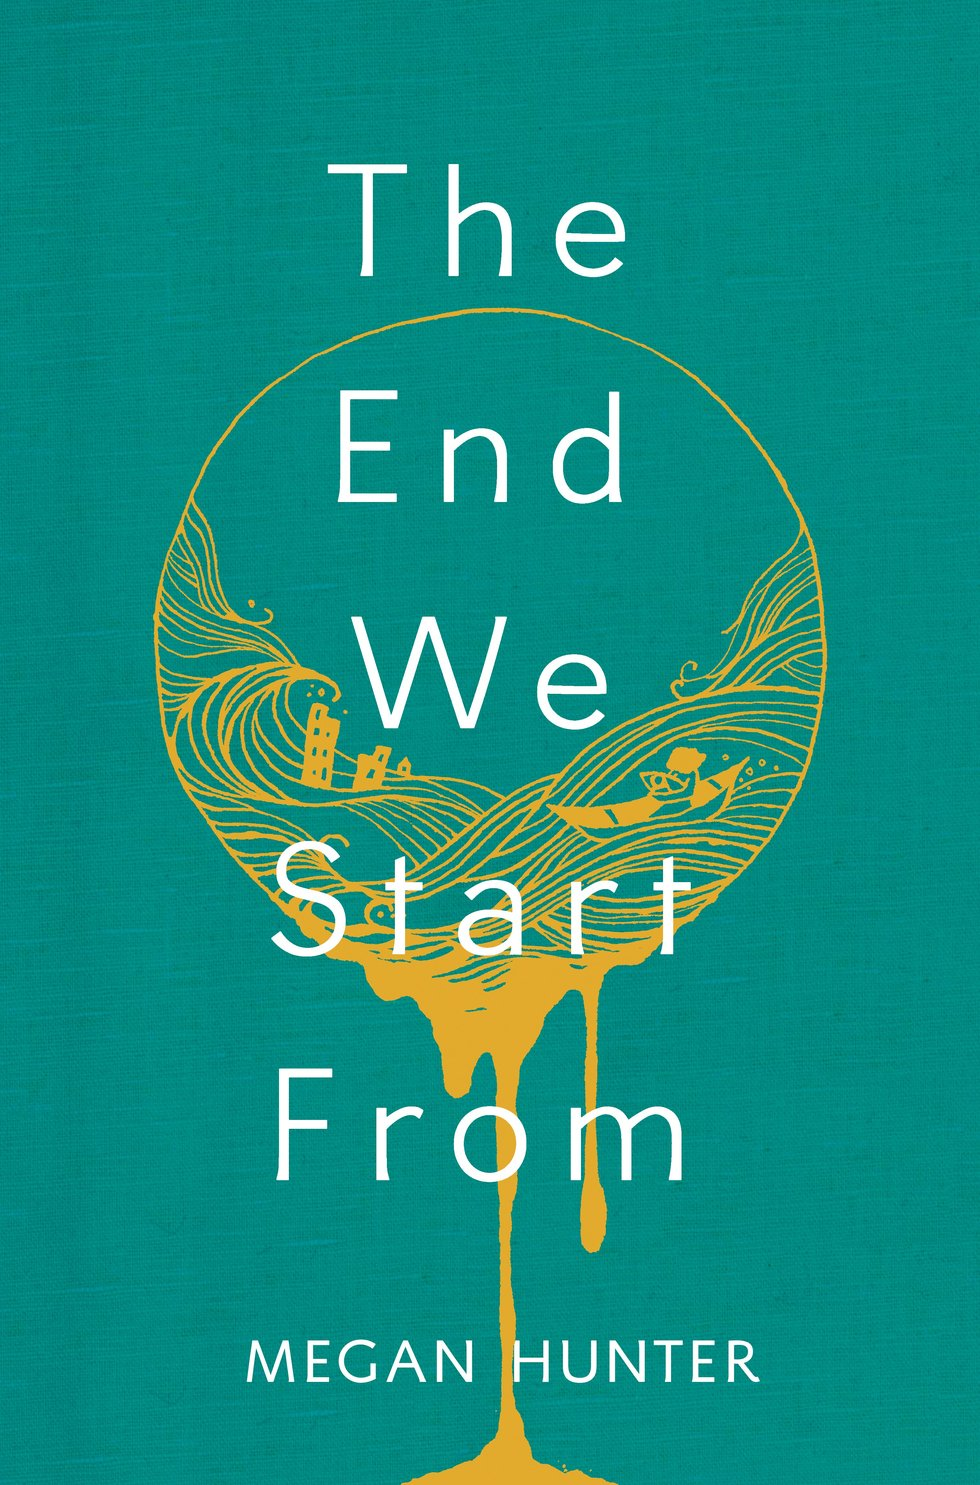 the-end-we-start-from-by-megan-hunter